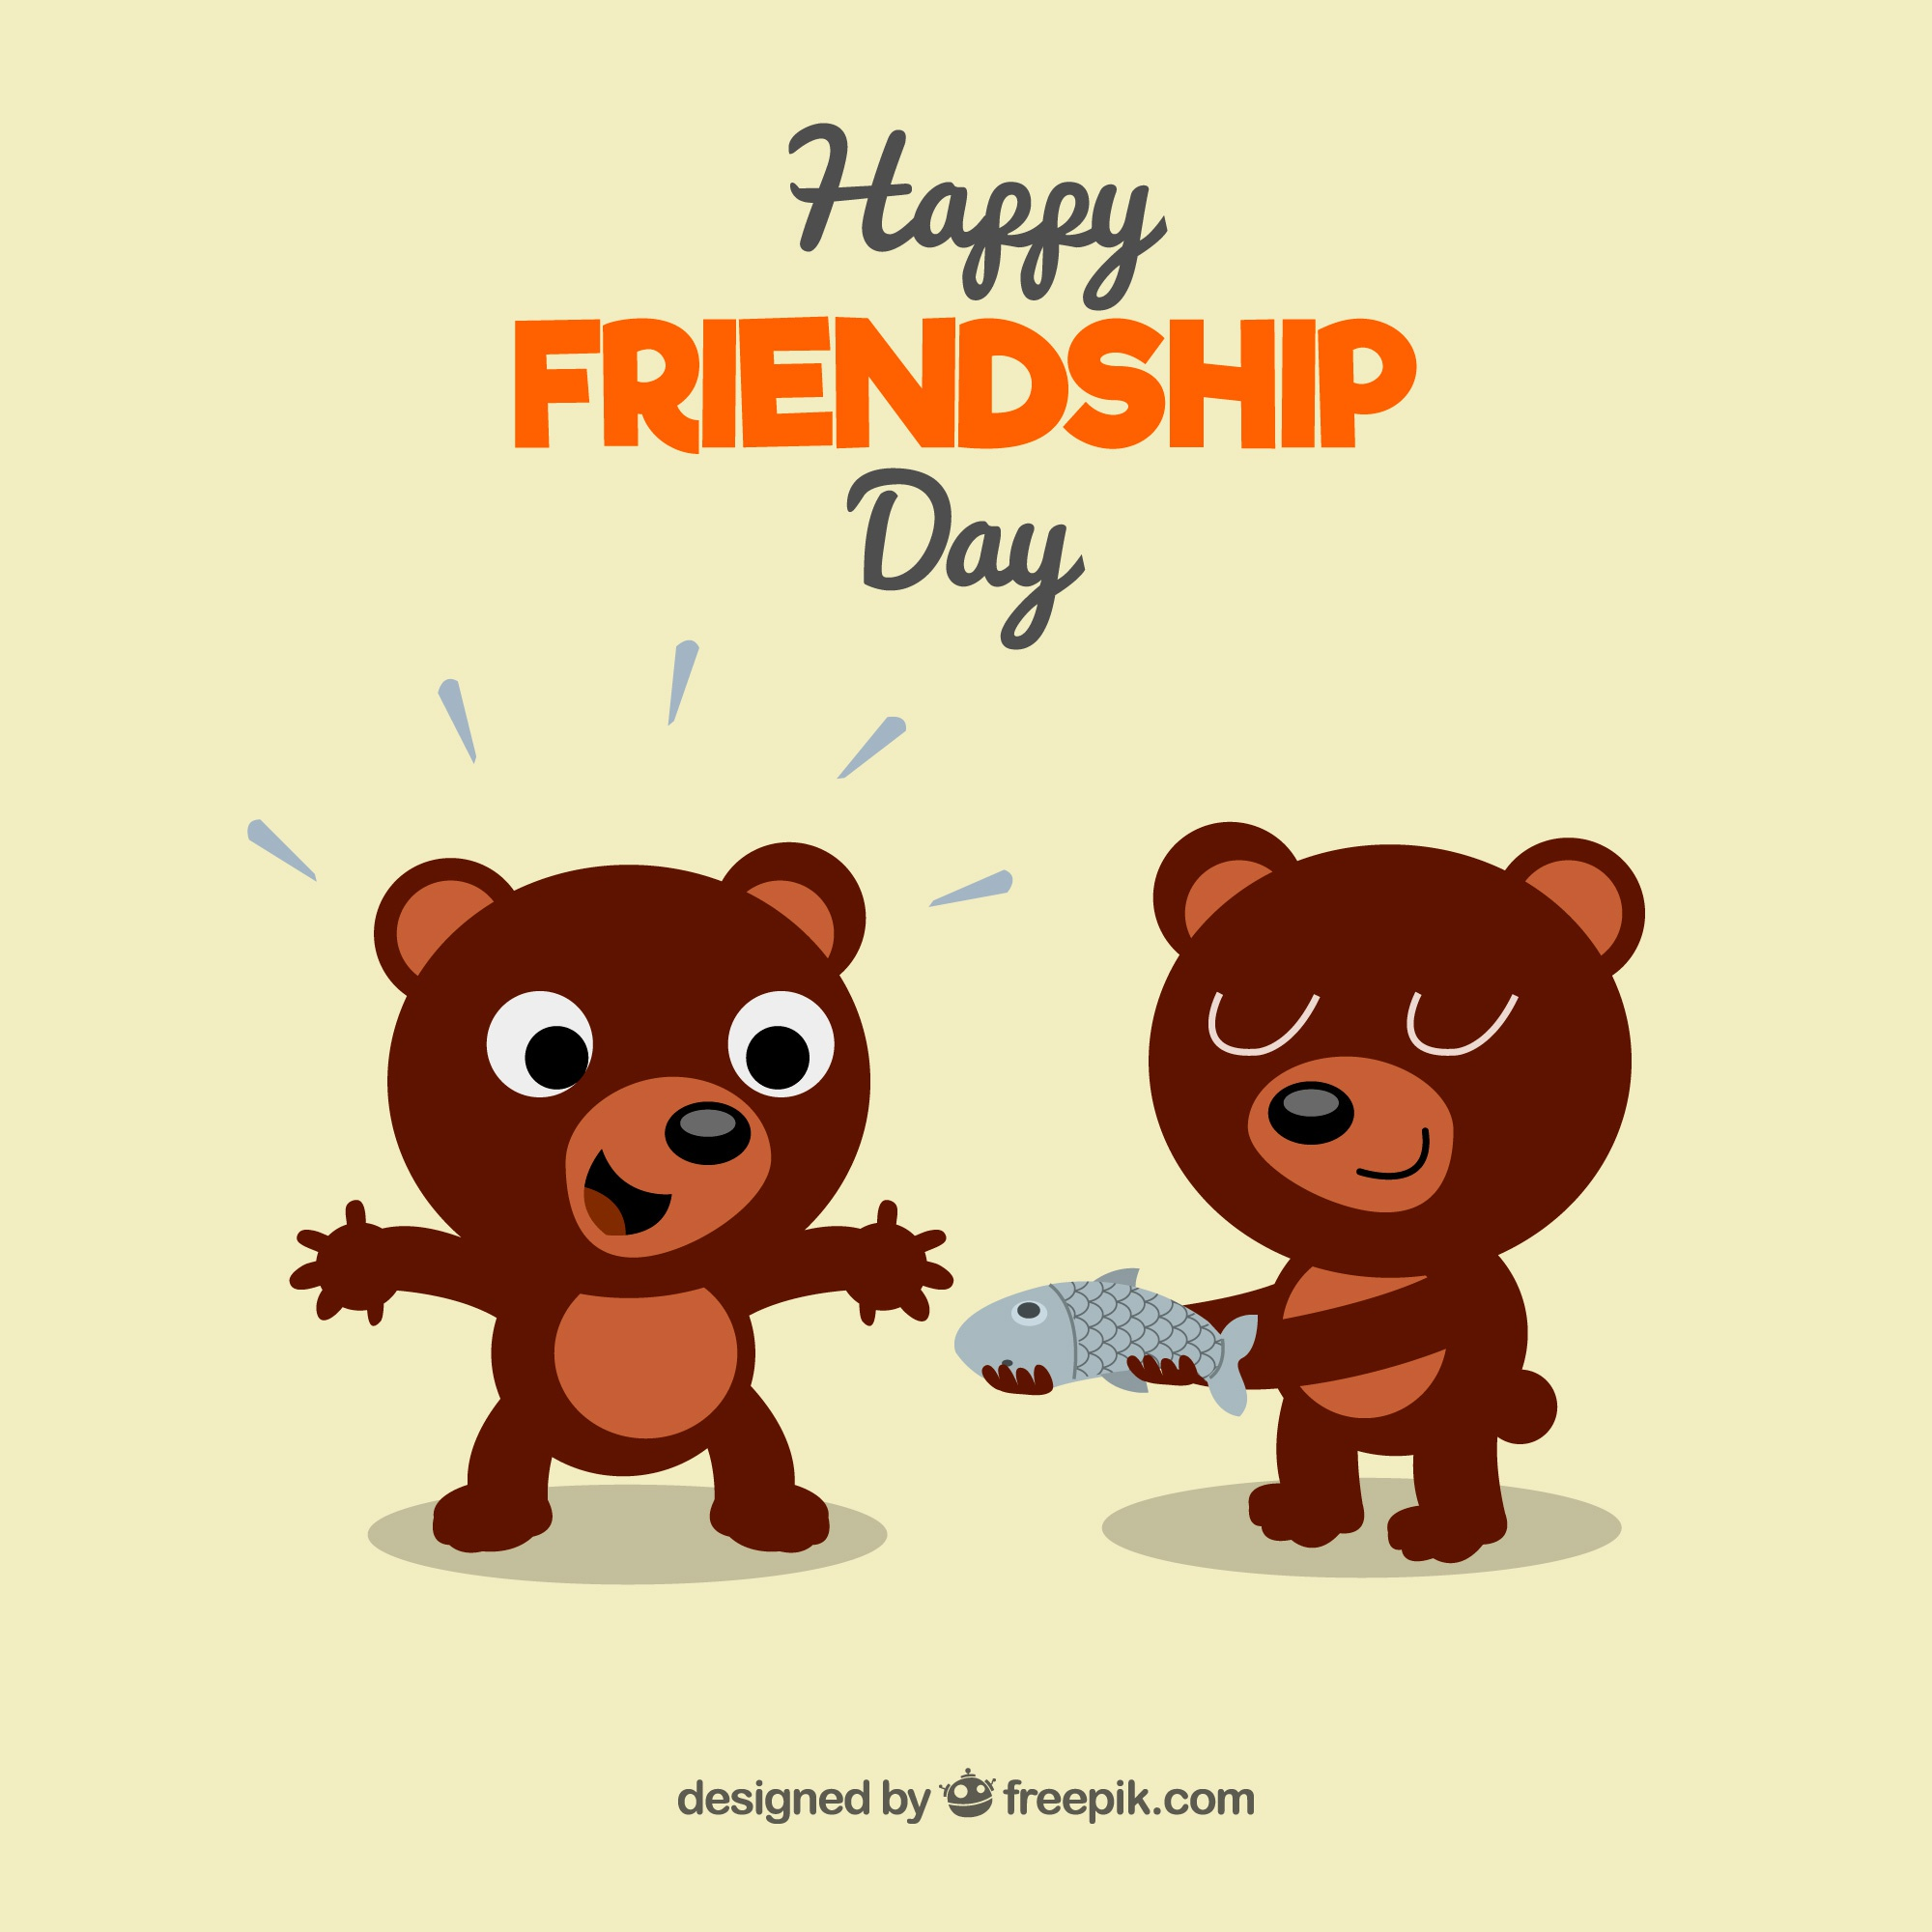 Friendship day background with bears